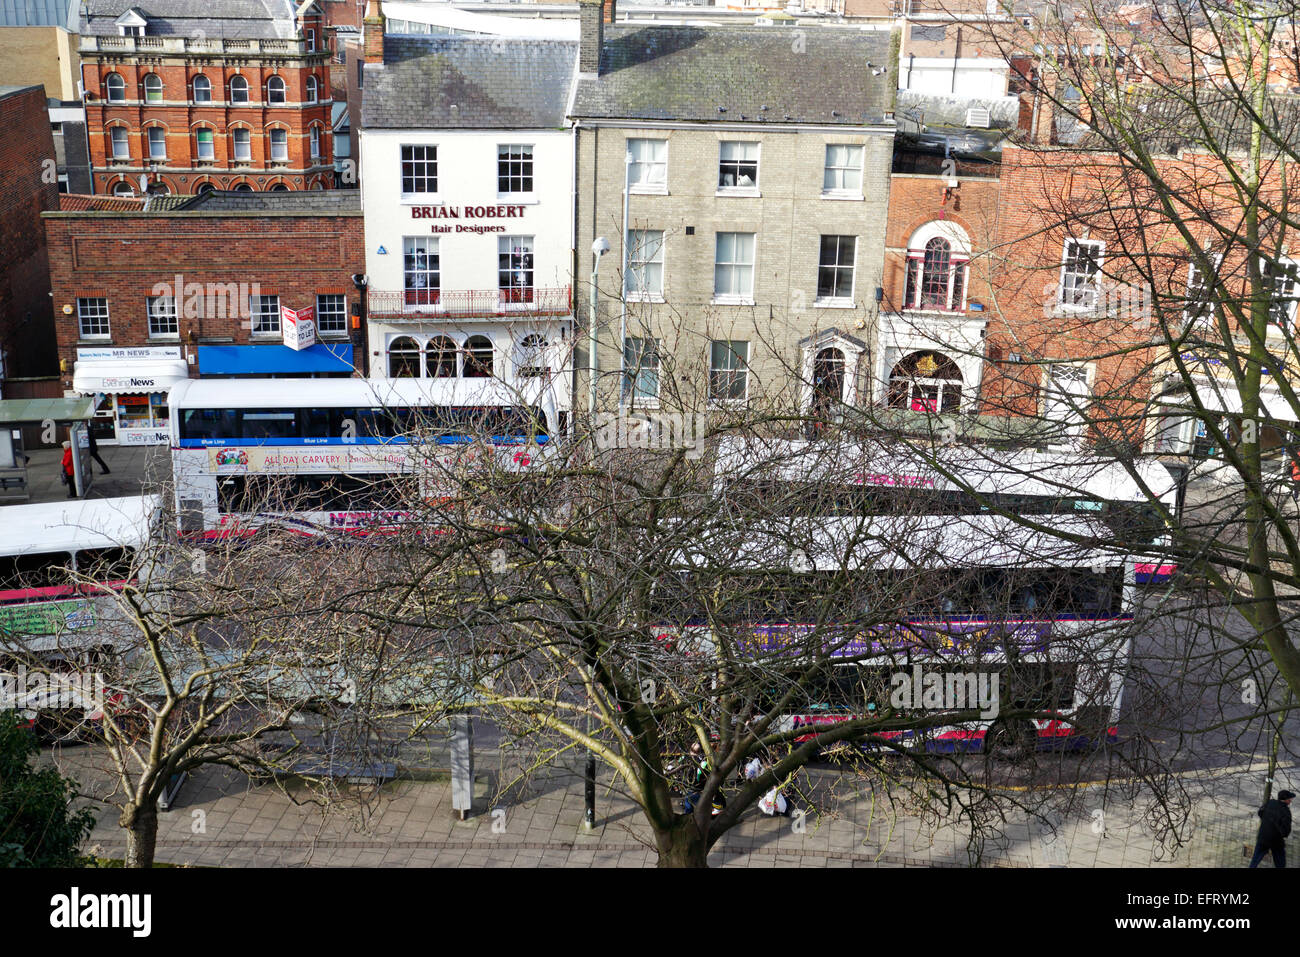 A view of bus congestion in Castle Meadow, Norwich, Norfolk, England, United Kingdom. - Stock Image